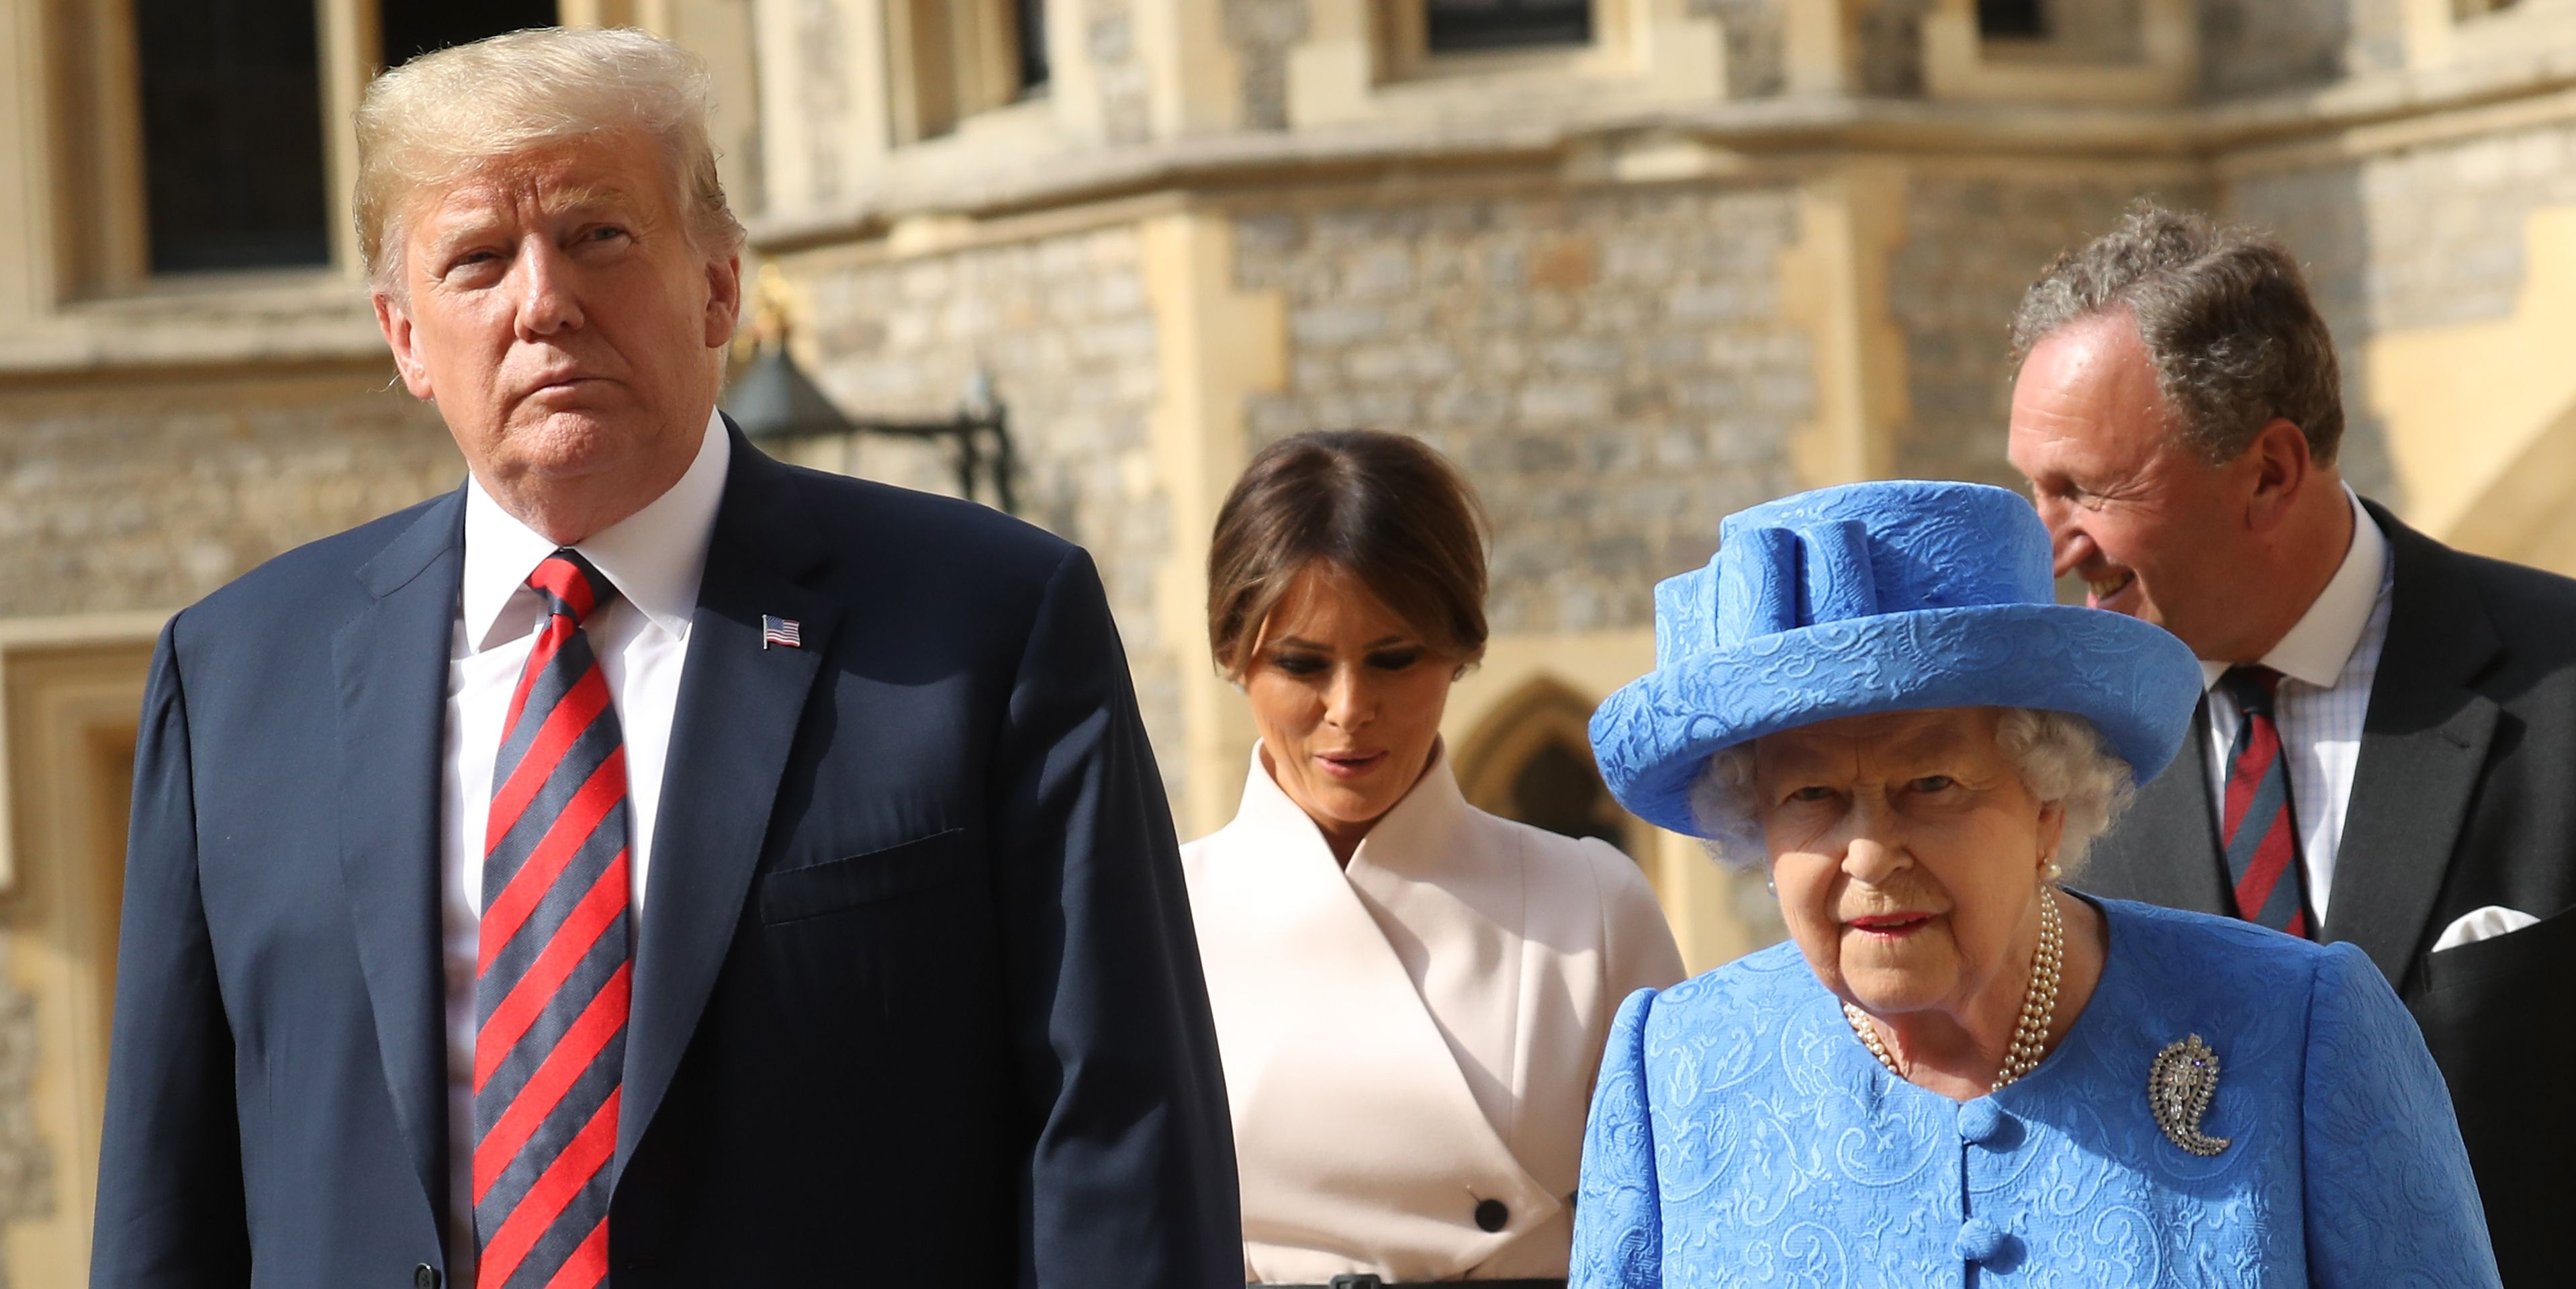 The President Of The United States And Mrs Trump Meet HM Queen